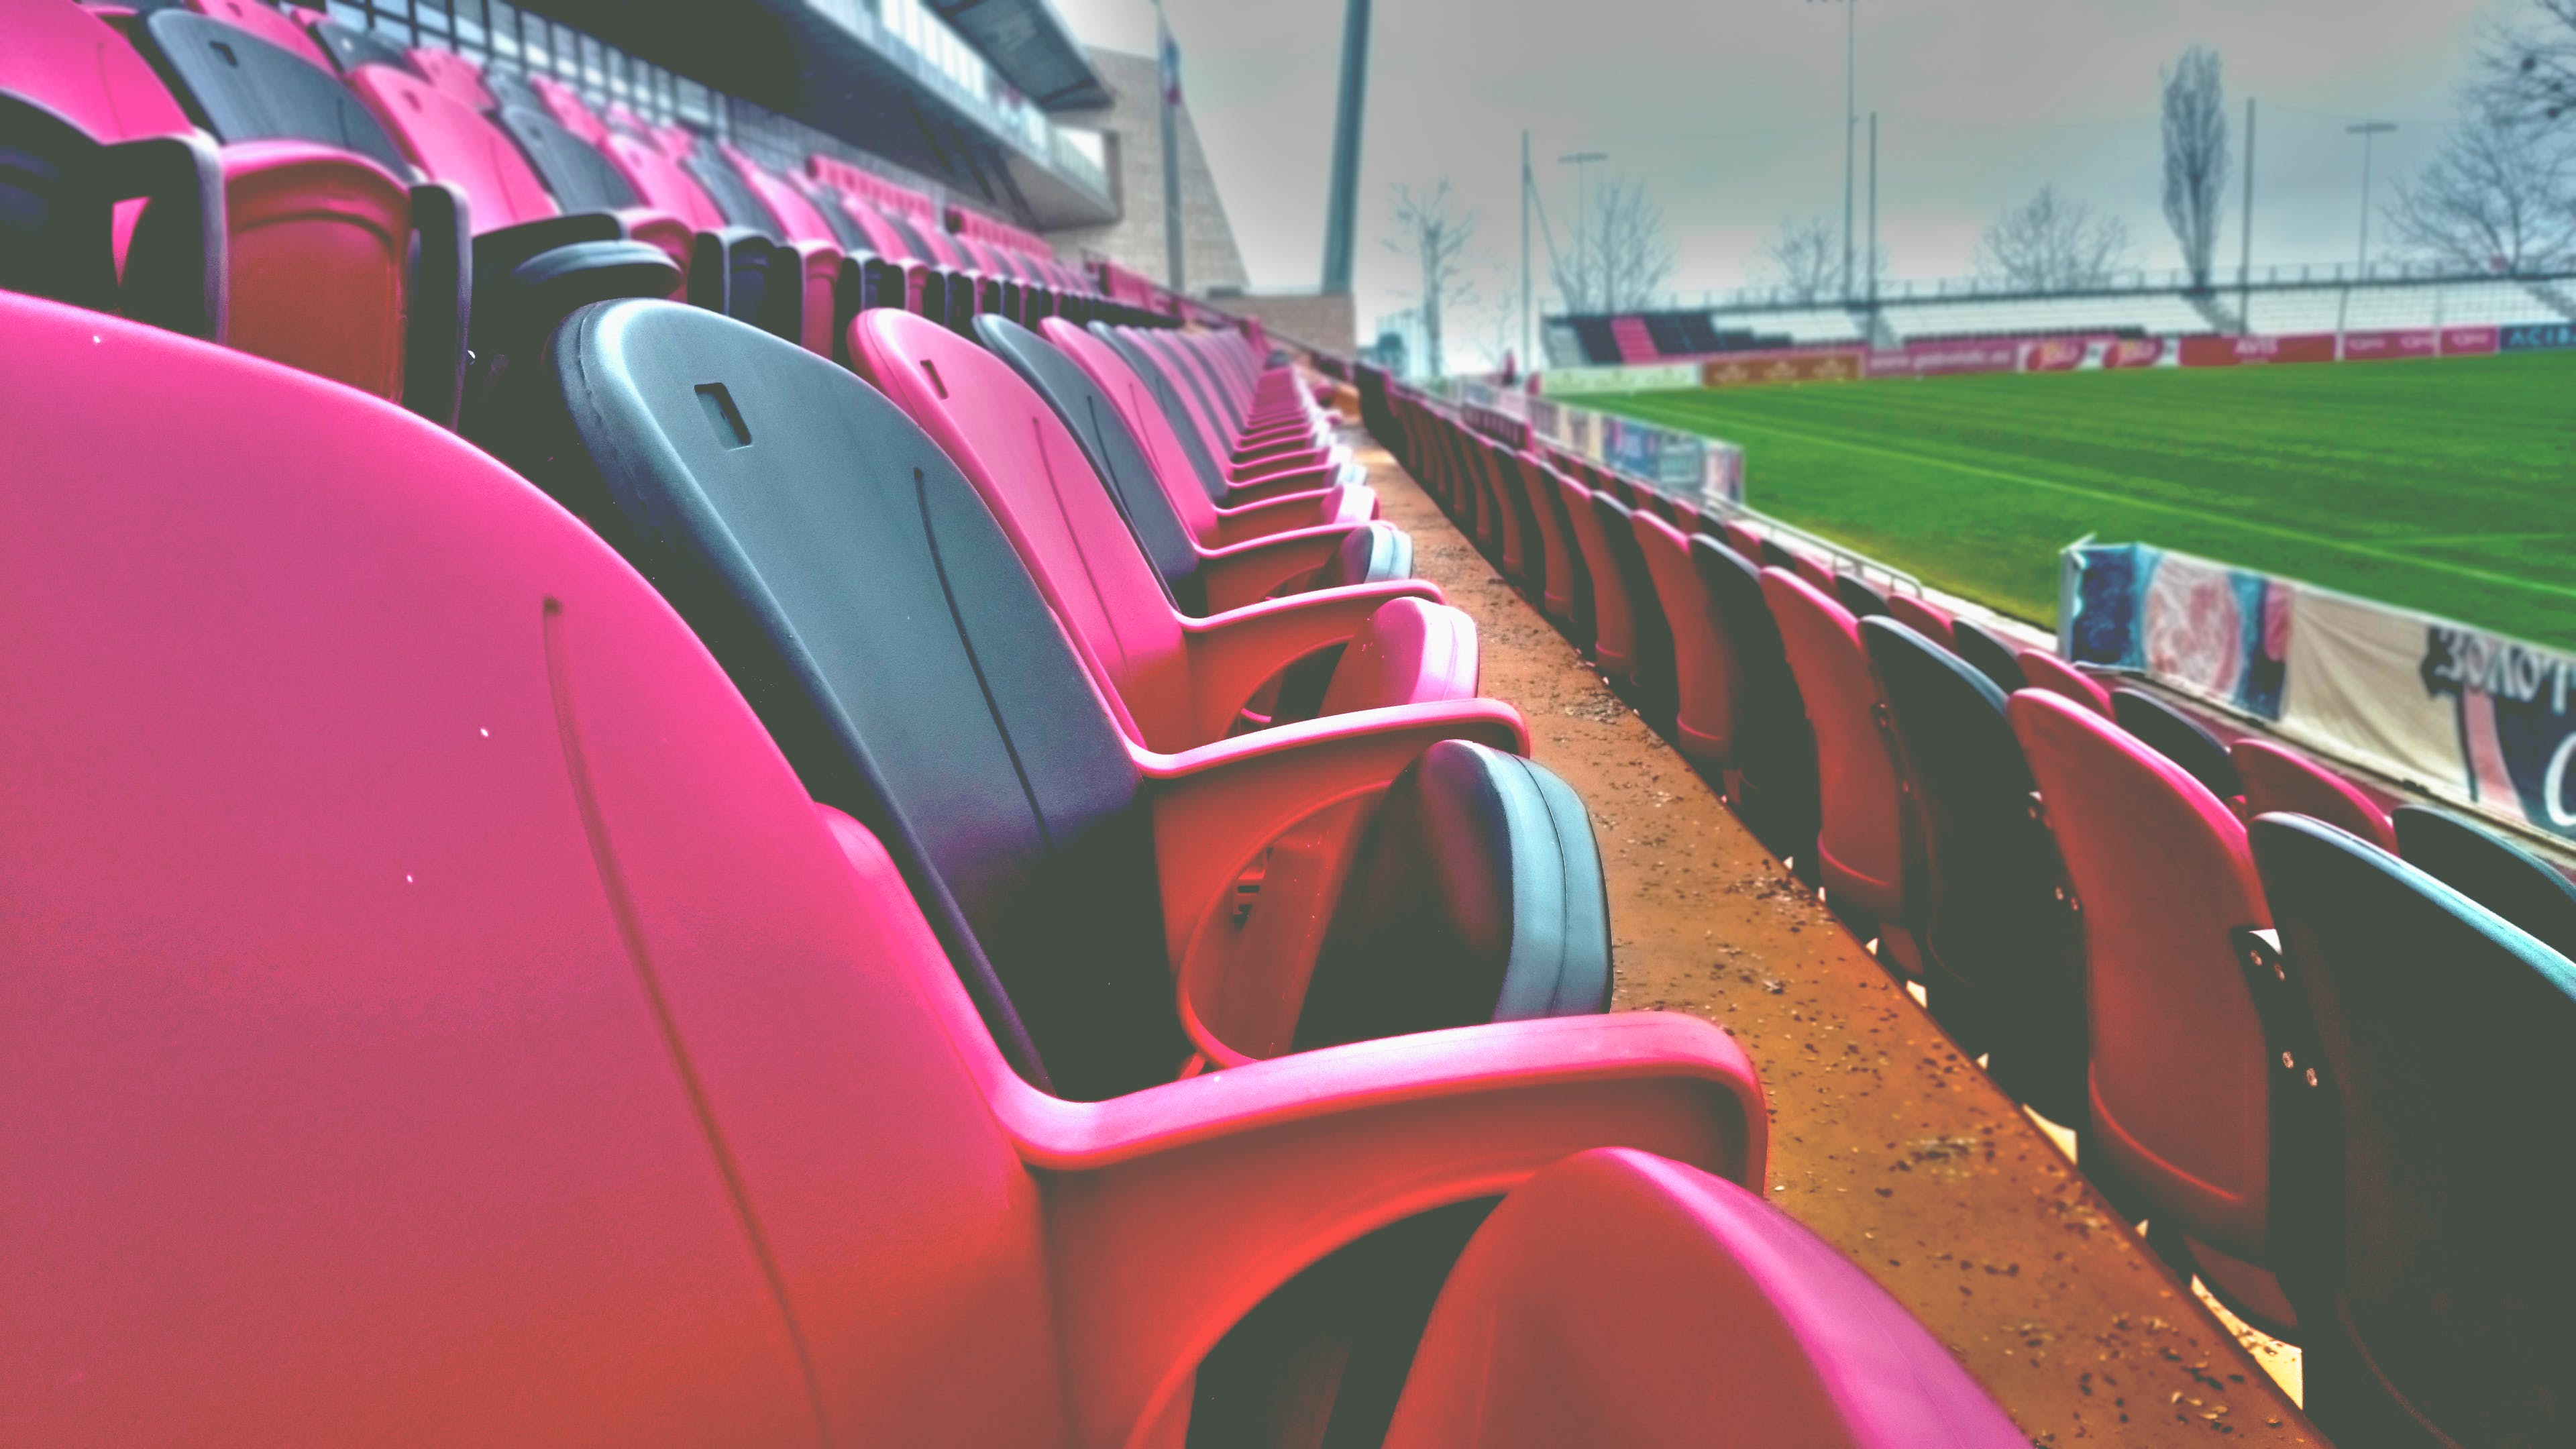 Free stock photo of stadium, color, row, chairs